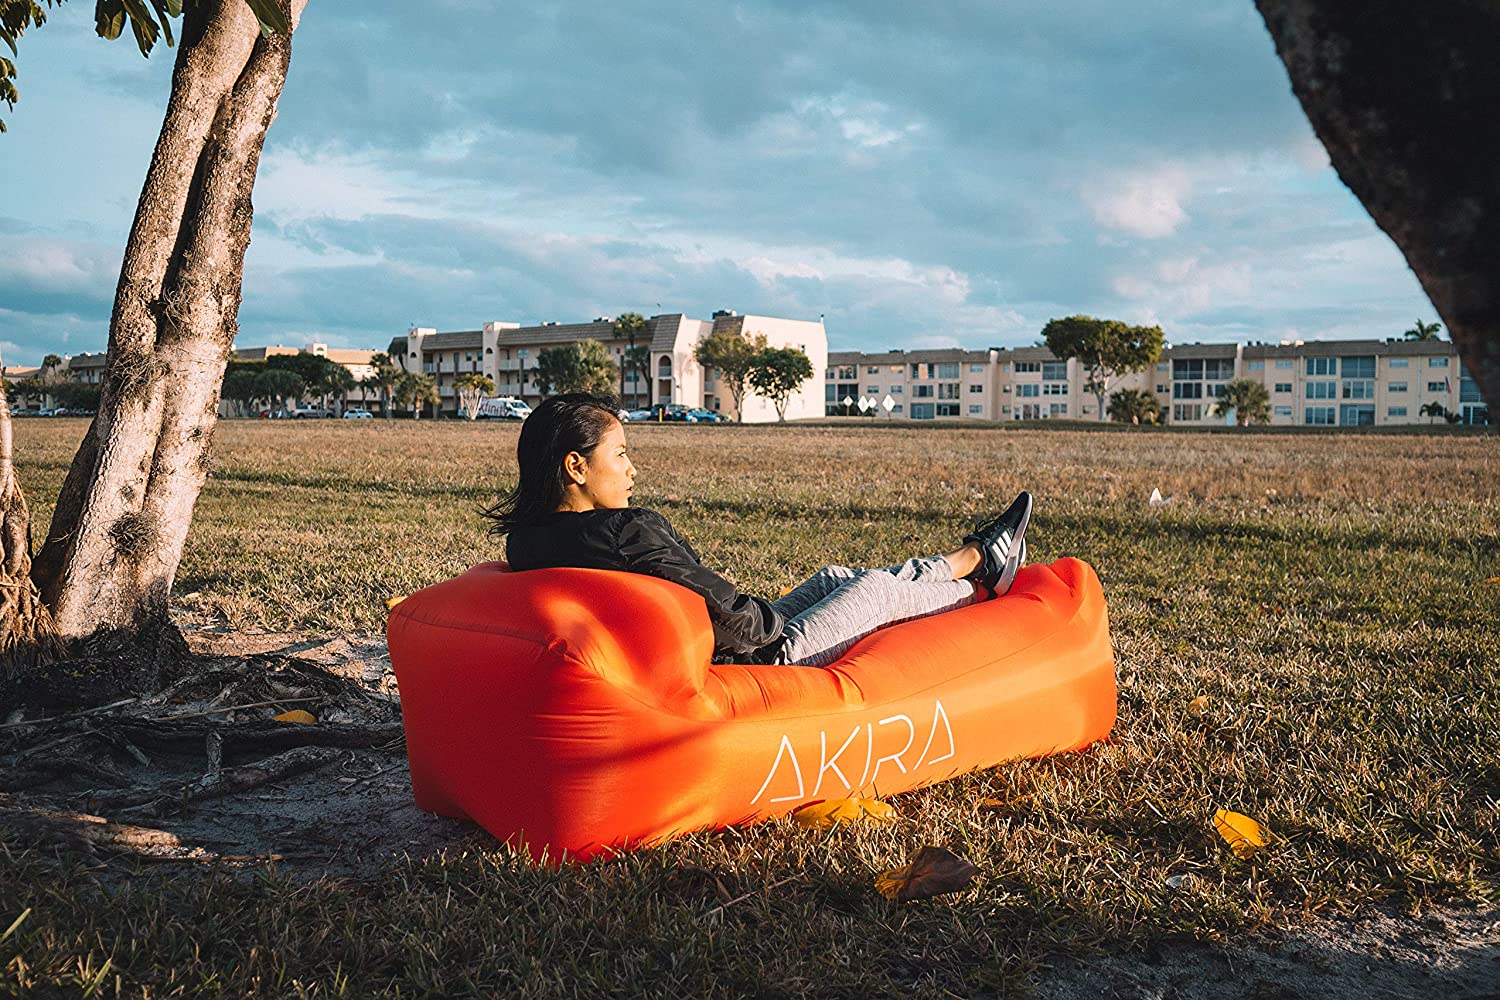 Made with Durable 210D Ripstop Fabric Outdoor and Indoor Inflatable Lounger for Festivals /& Beaches! Akira アキラ Inflatable Waterproof Lounger with Bottle Opener /& Anti-Air Leaking Design